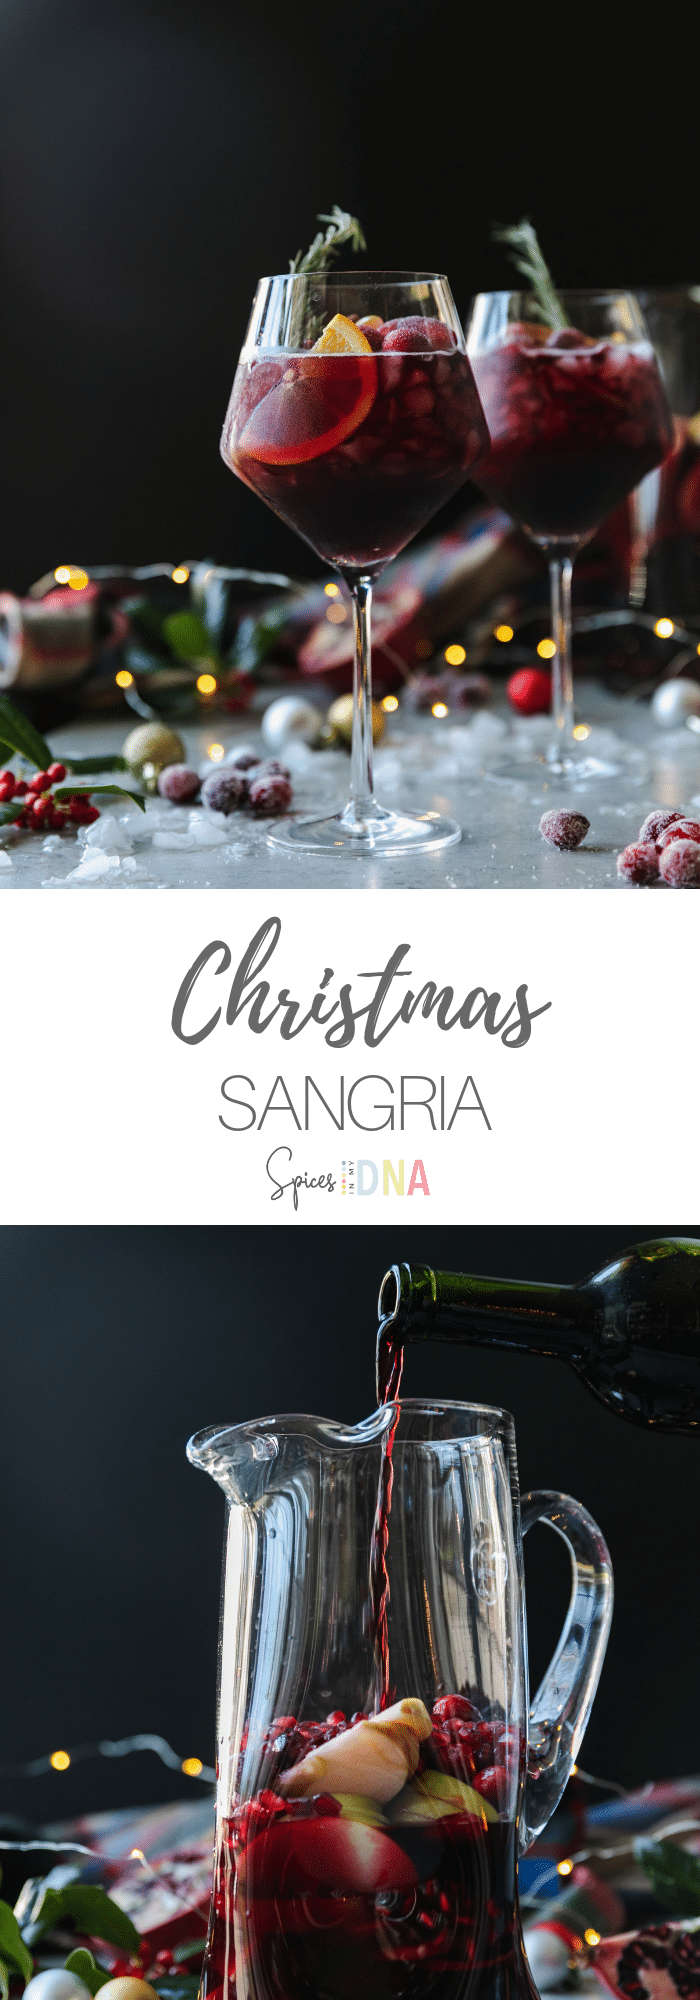 This Christmas Sangria is the most festive red sangria recipe for all of your holiday celebrations! It's the best red sangria ever, and SO easy to make. It's made with your favorite red wine, a touch of cinnamon simple syrup, pomegranate juice, cranberry juice, a little orange liqueur, pomegranate arils, sliced oranges, honeycrisp apples, and fresh cranberries! #sangria #cocktail #christmas #holidayrecipe